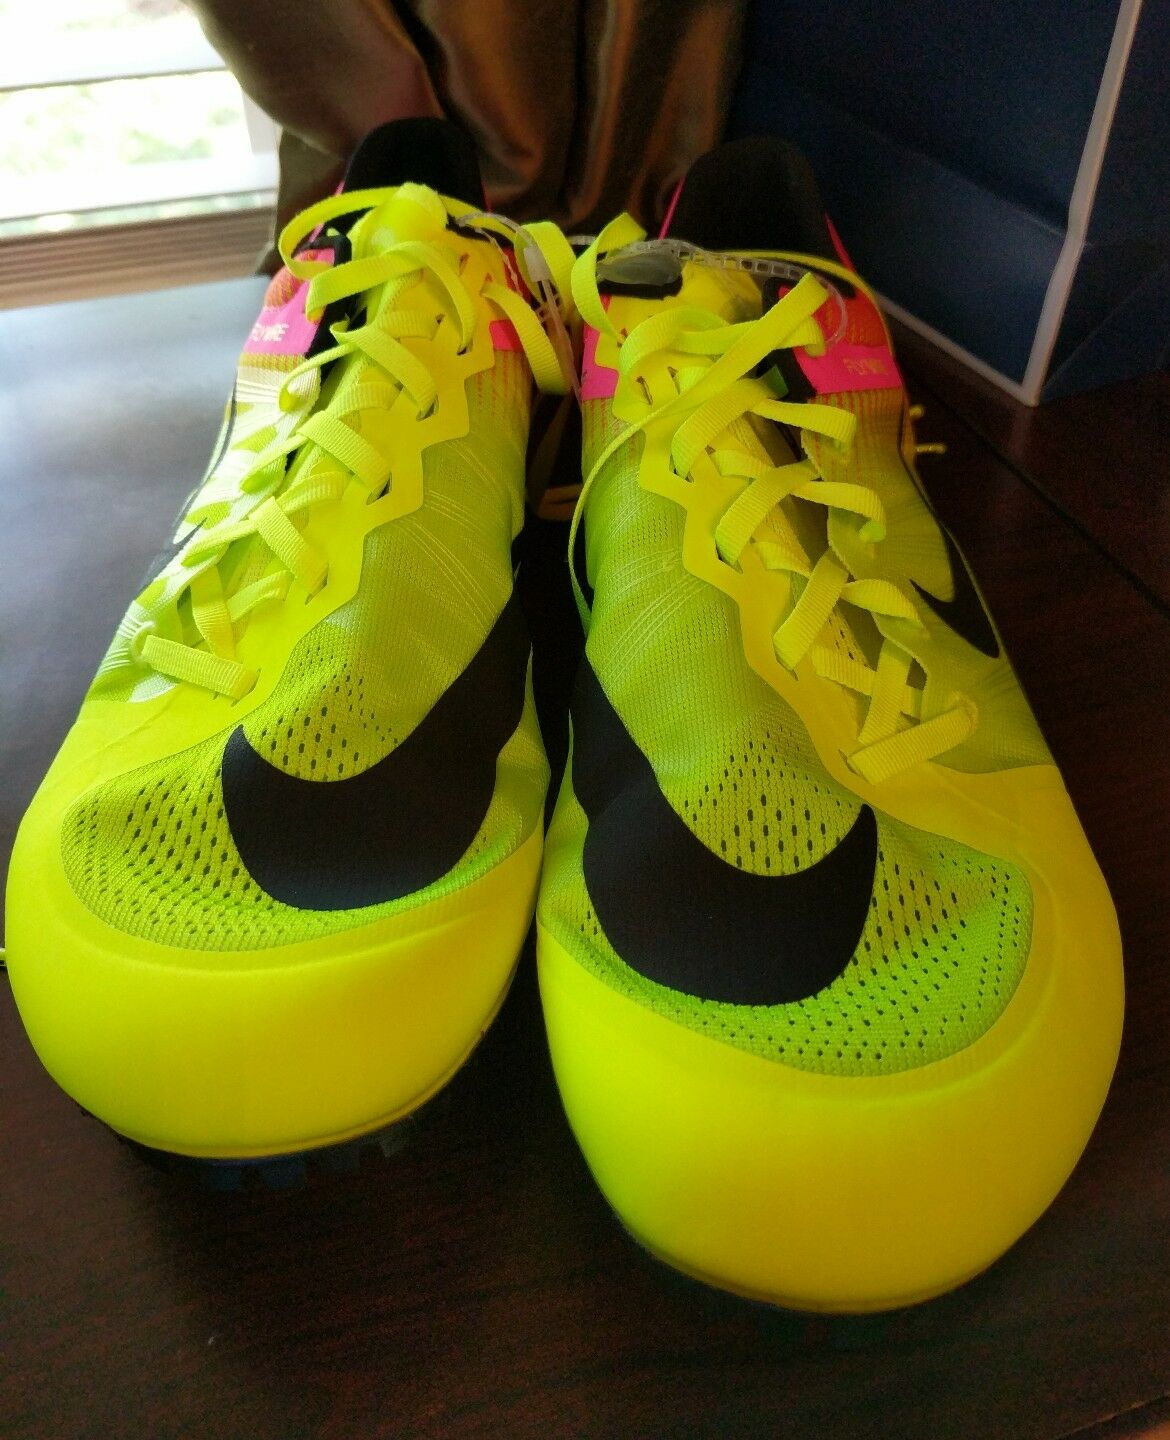 Nike Zoom Ja Fly 2 Track Track Track Spikes Rio Volt  Pink Size 12 Unisex (705373-999) 82cc27